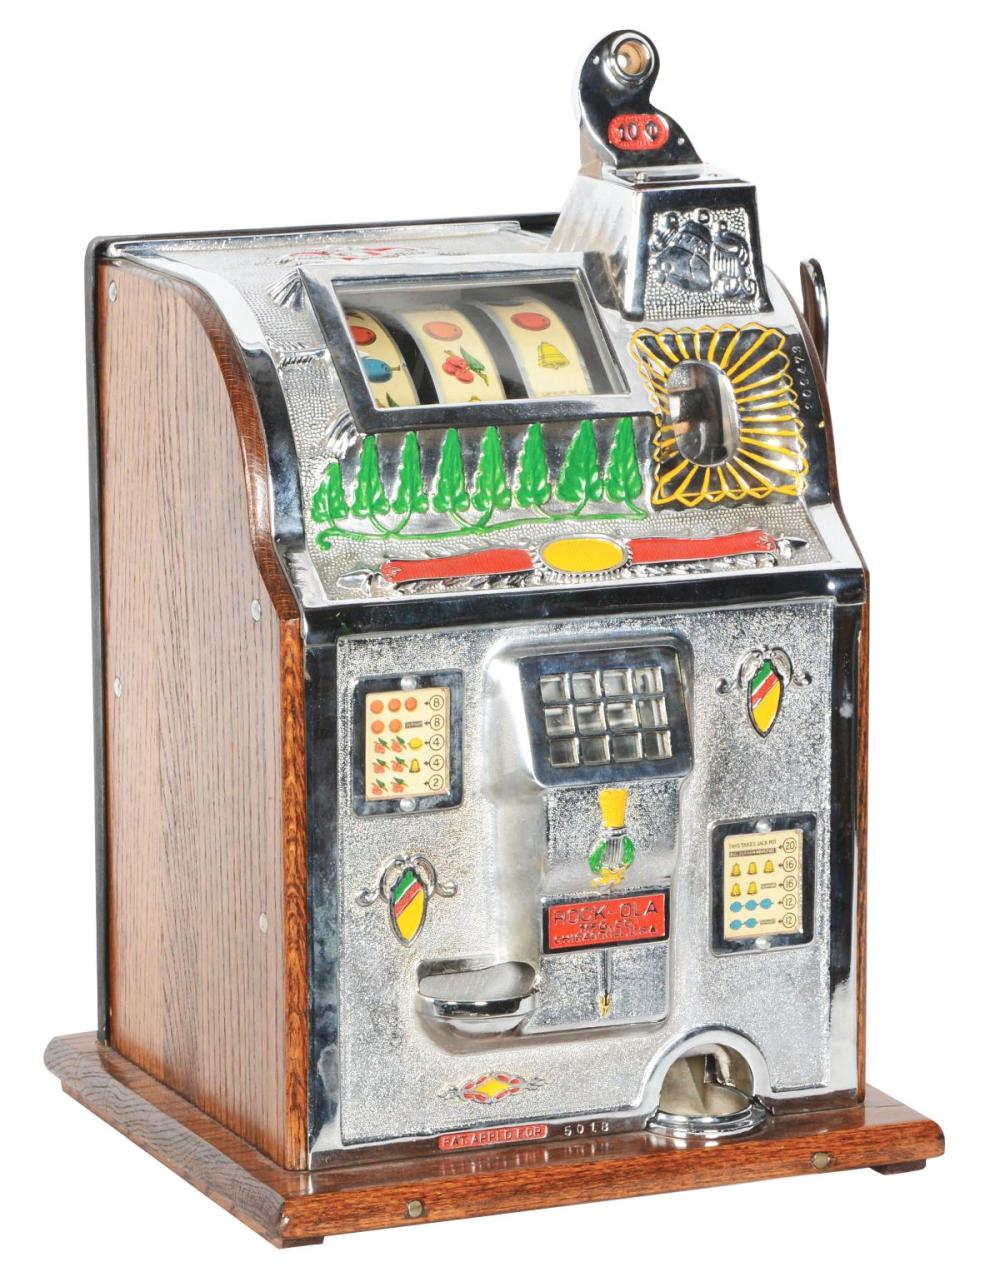 10¢ MILLS ROCK-OLA JACKPOT SLOT MACHINE.